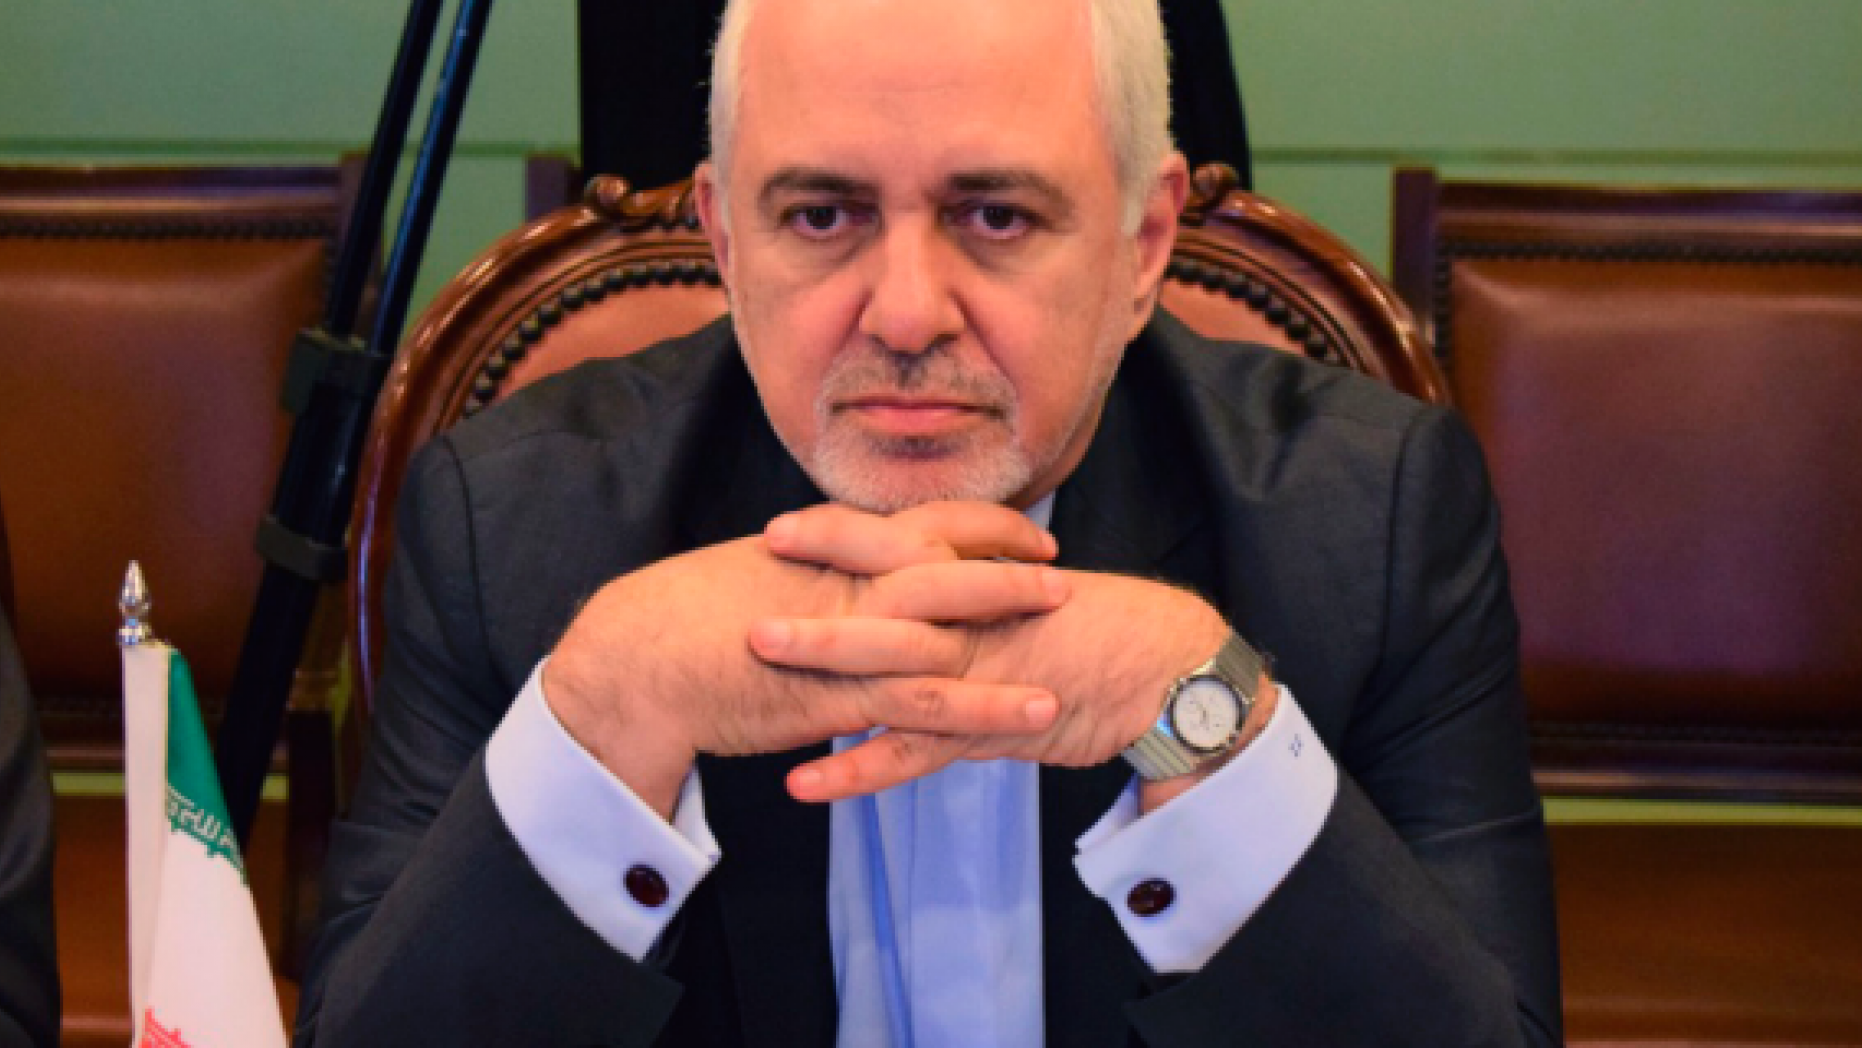 In this photo released by the Foreign Office, Iranian Foreign Minister Mohammad Javad Zarif, attends meeting with Pakistani officials at the Foreign Ministry in Islamabad, Pakistan, Friday, May 24, 2019. Zarif is in Pakistan Friday on a critically timed visit amid a crisis between Tehran and Washington and ahead of next week